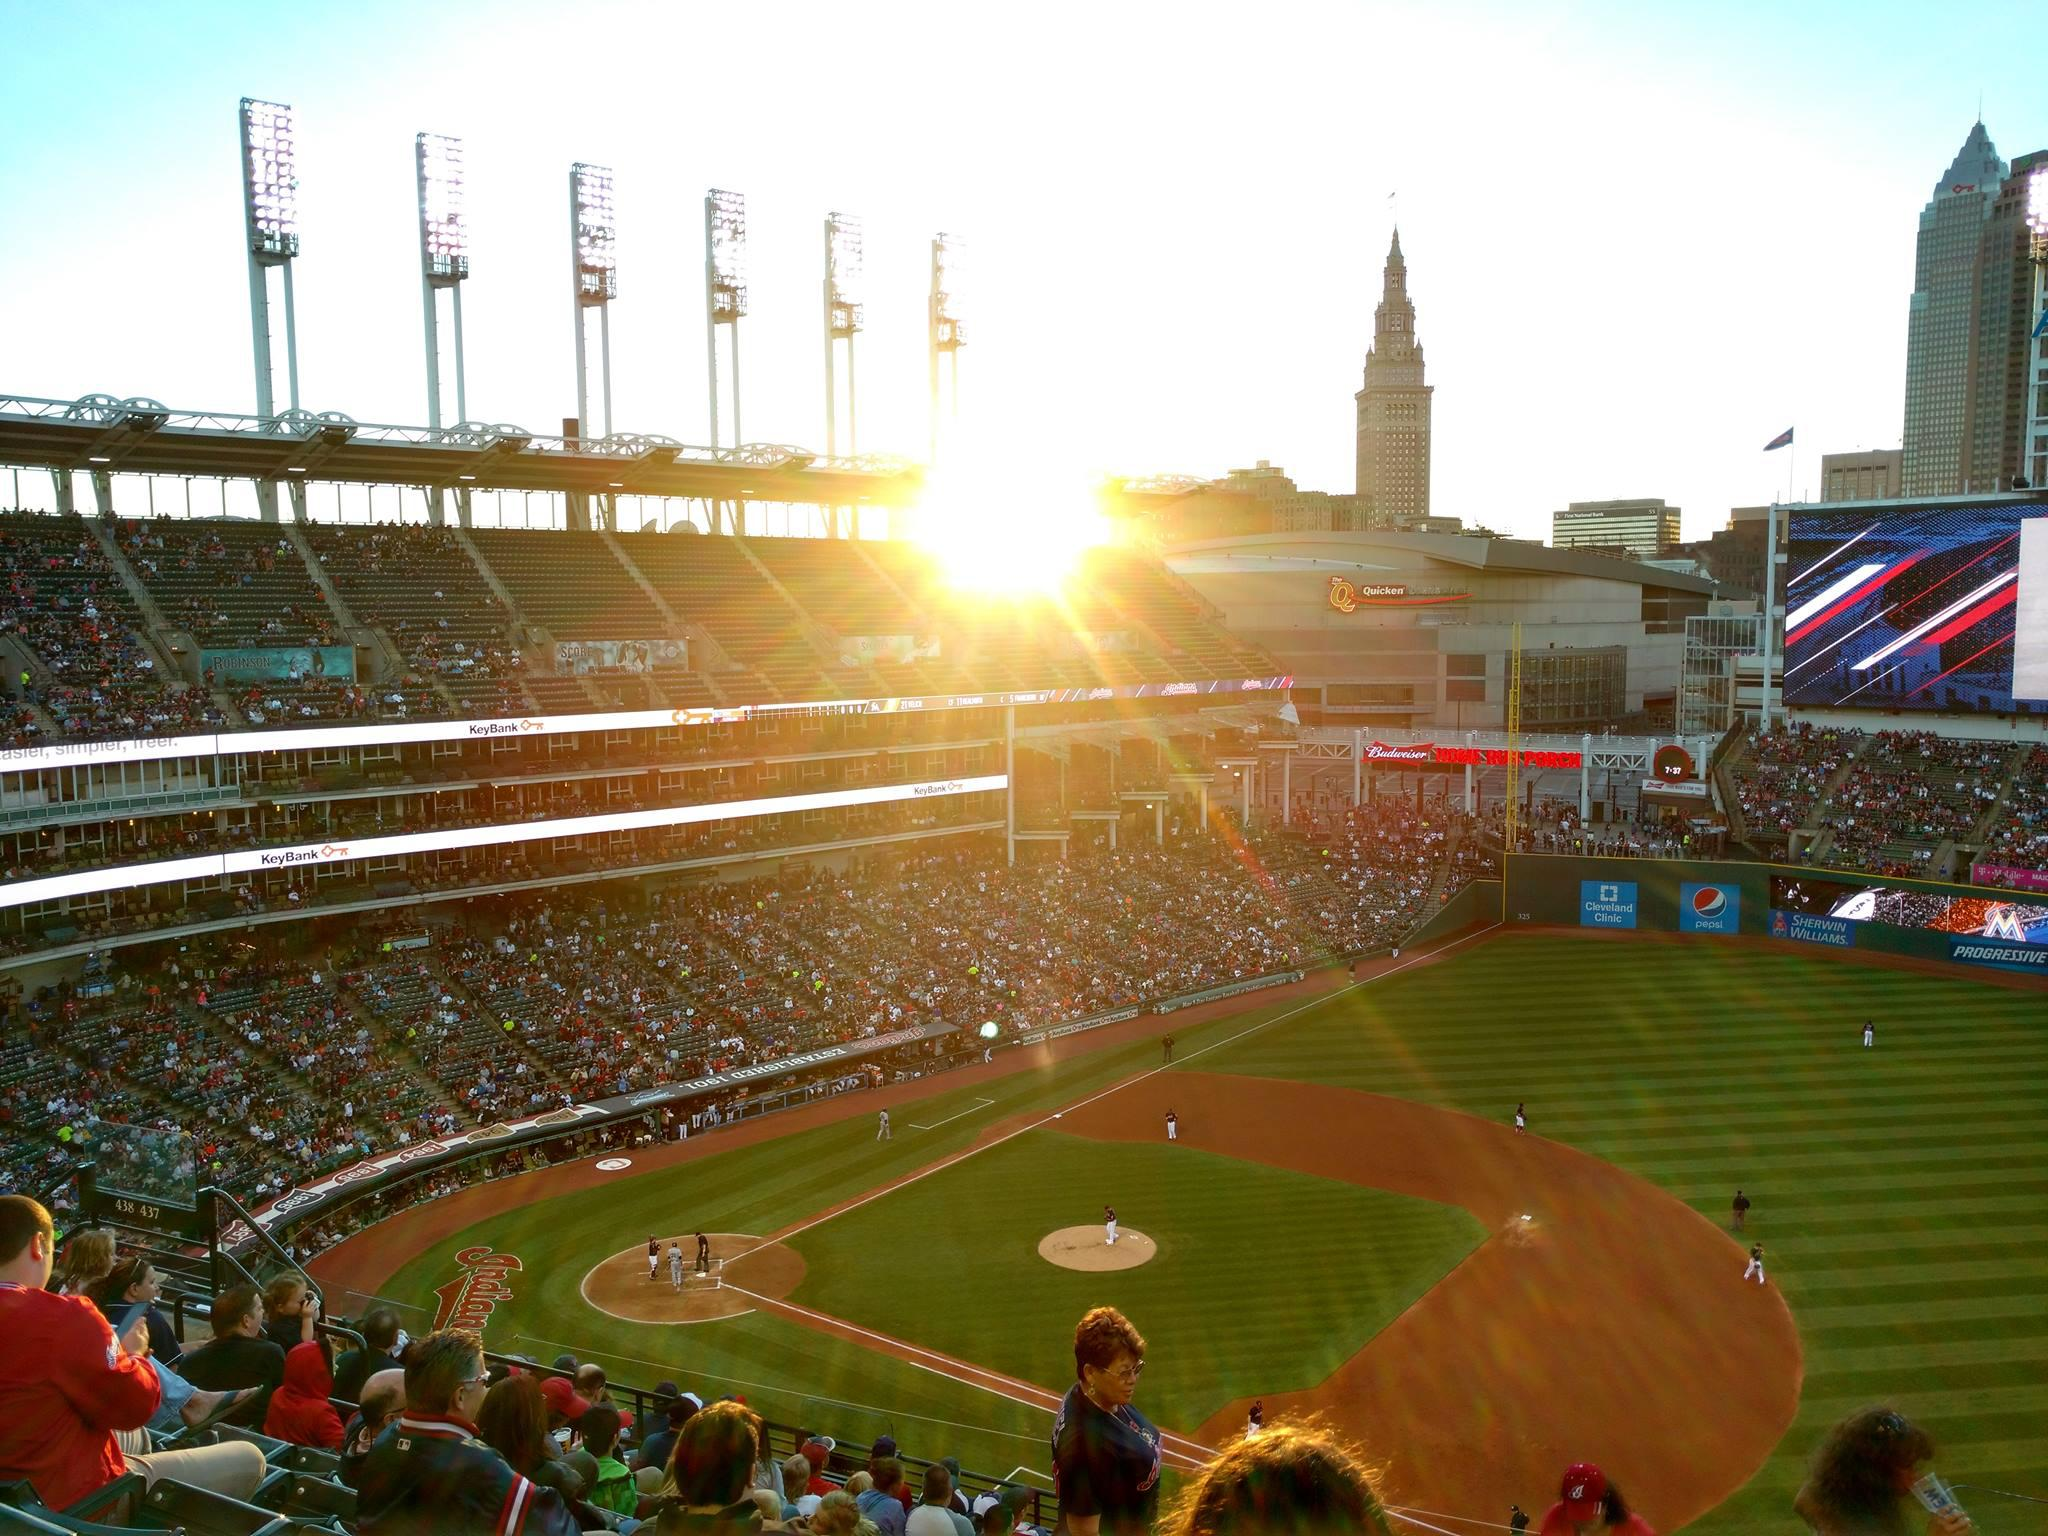 Cleveland Indians vs. Oakland Athletics (Away)